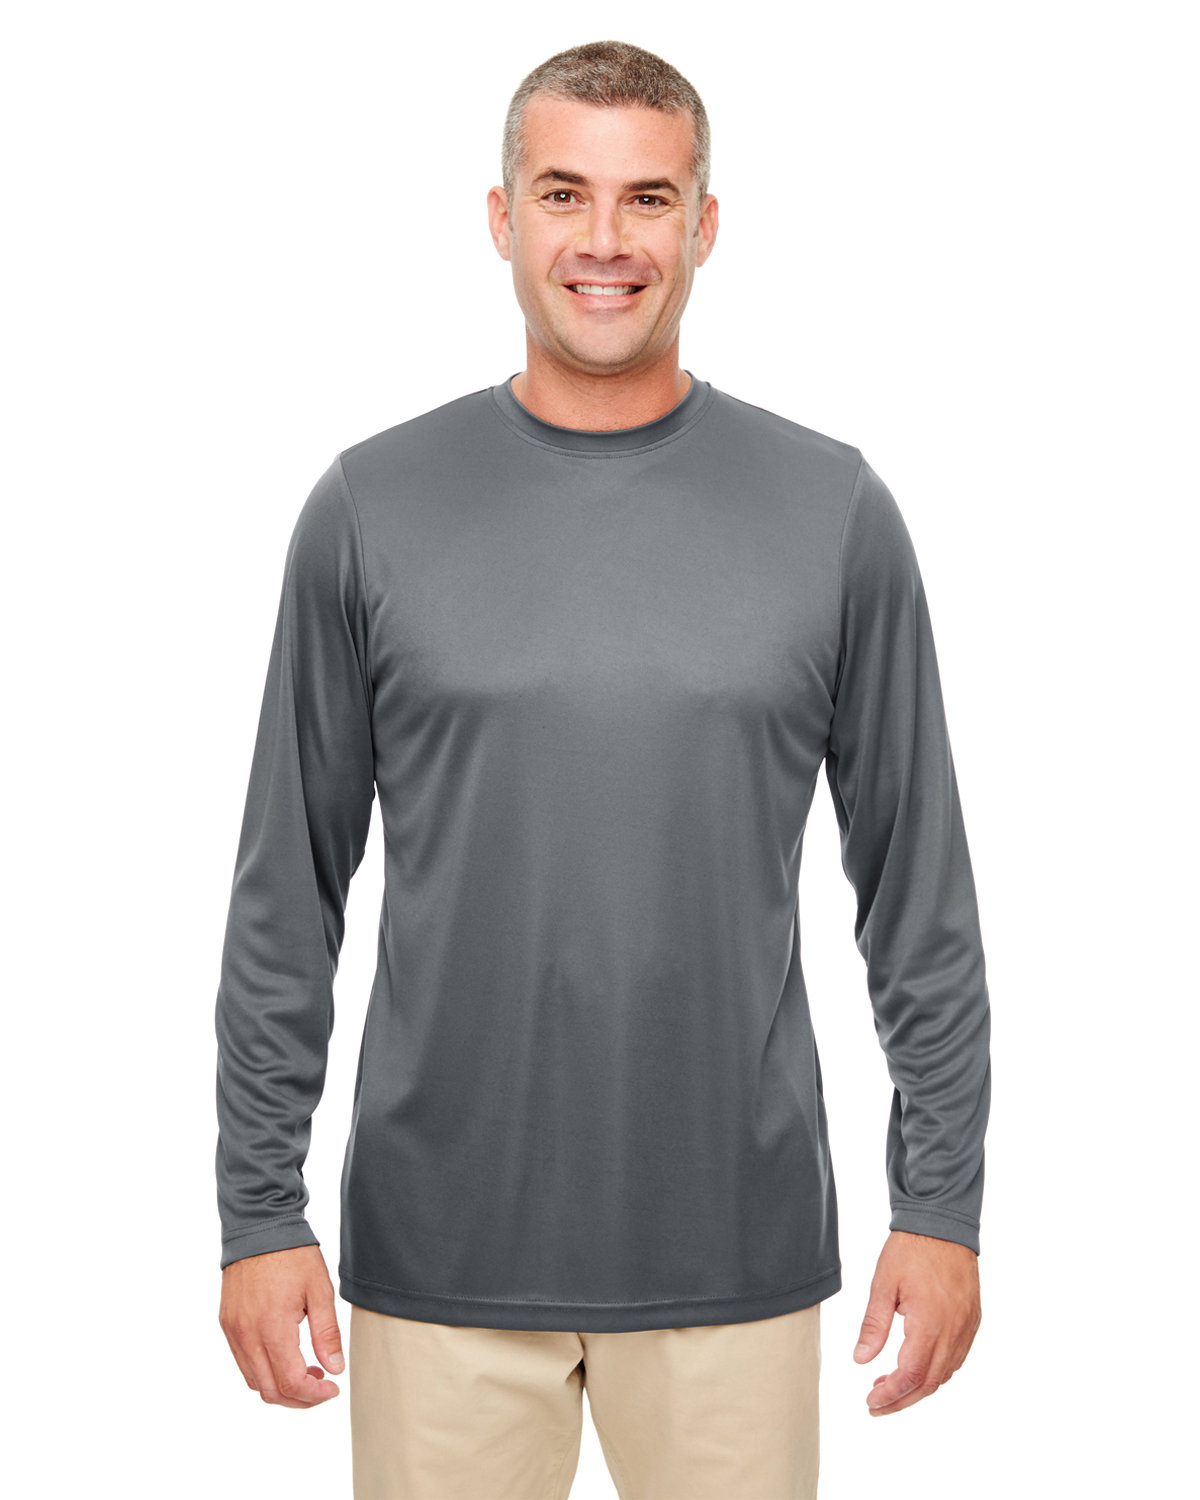 UltraClub Men's Cool & Dry Performance Long-Sleeve Top CHARCOAL